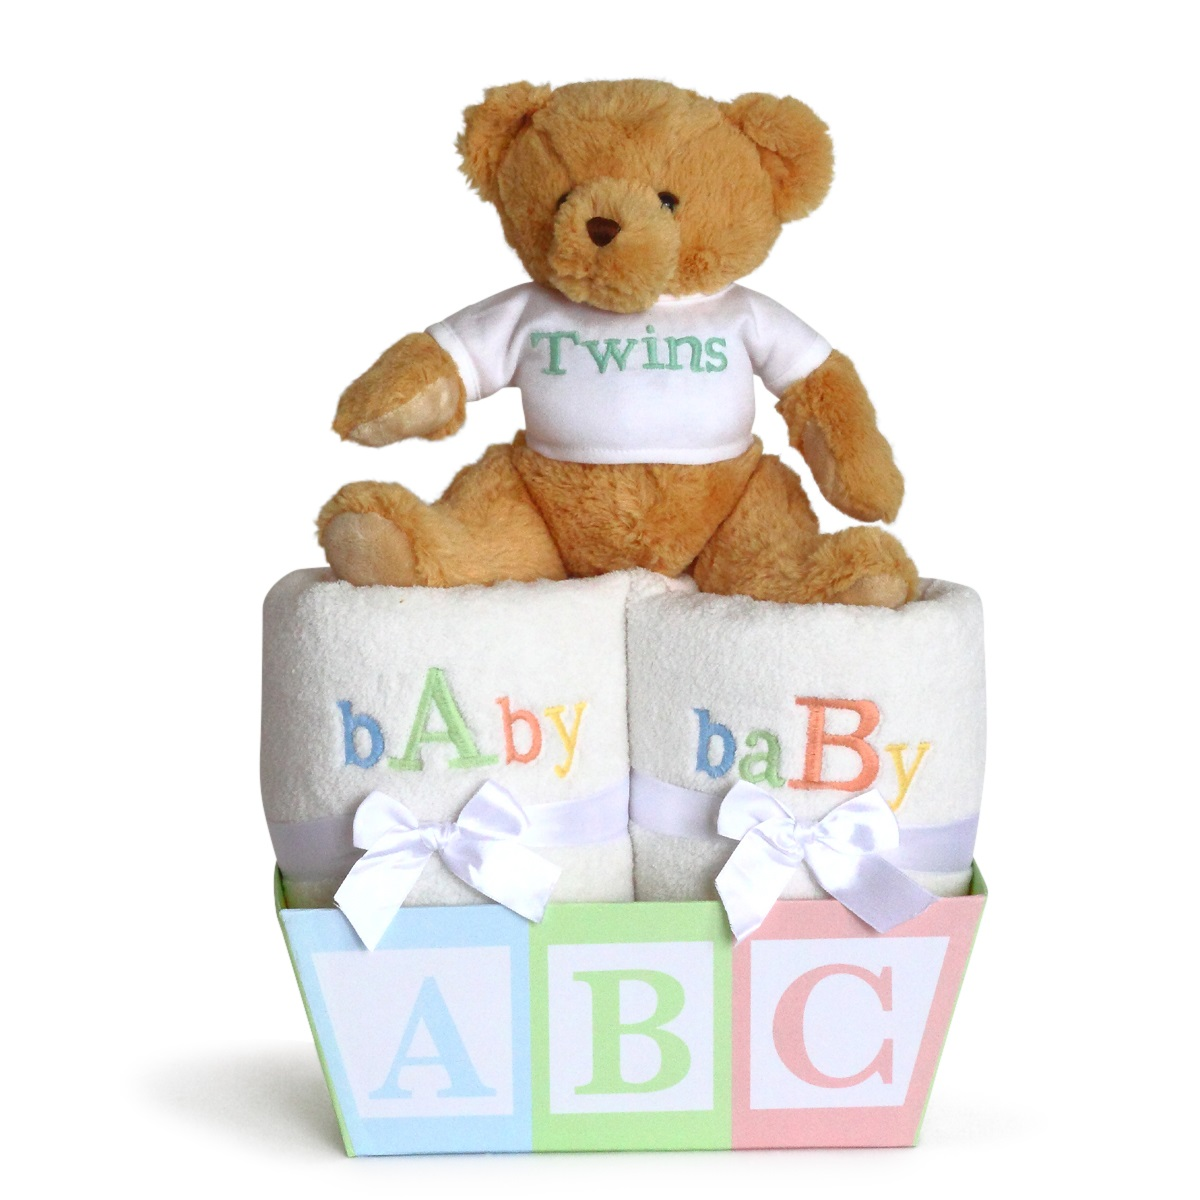 Baby Gift Sets For Twins : Baby a b gift for twins from silly phillie